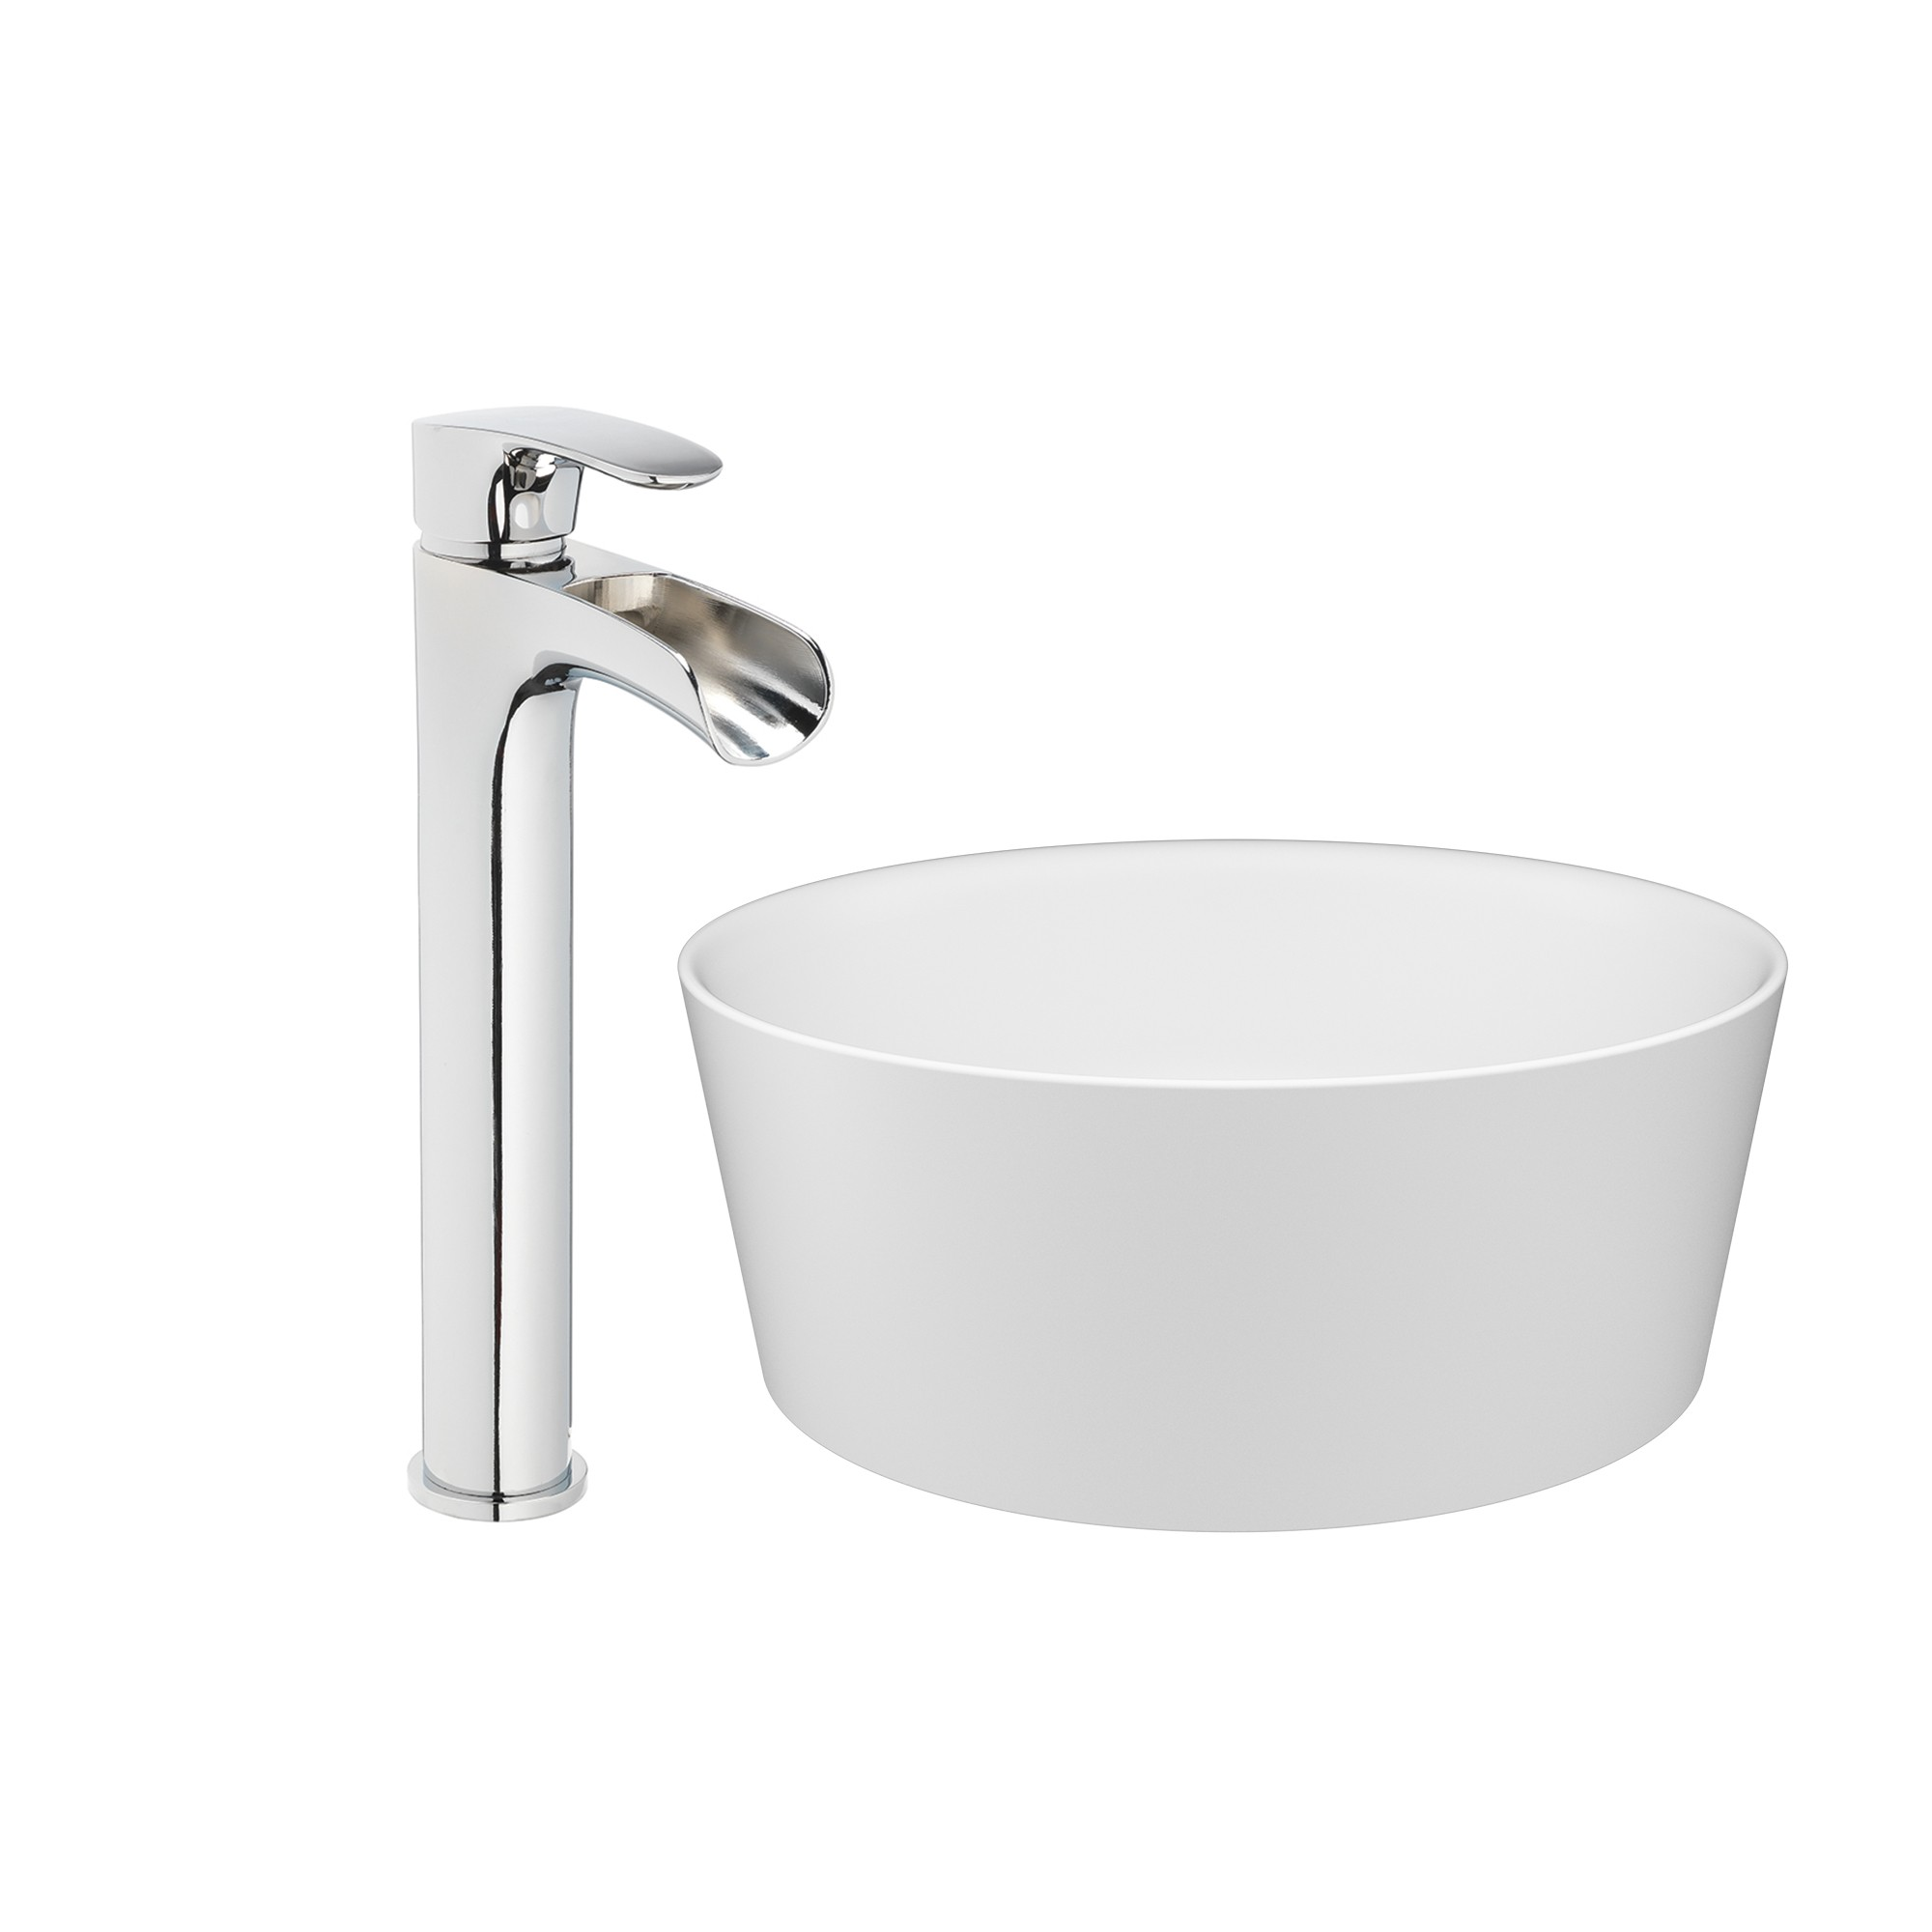 jacuzzi 15 13 16 solid surface vessel bathroom sink round basin white gloss with vessel filler faucet and pop drain included